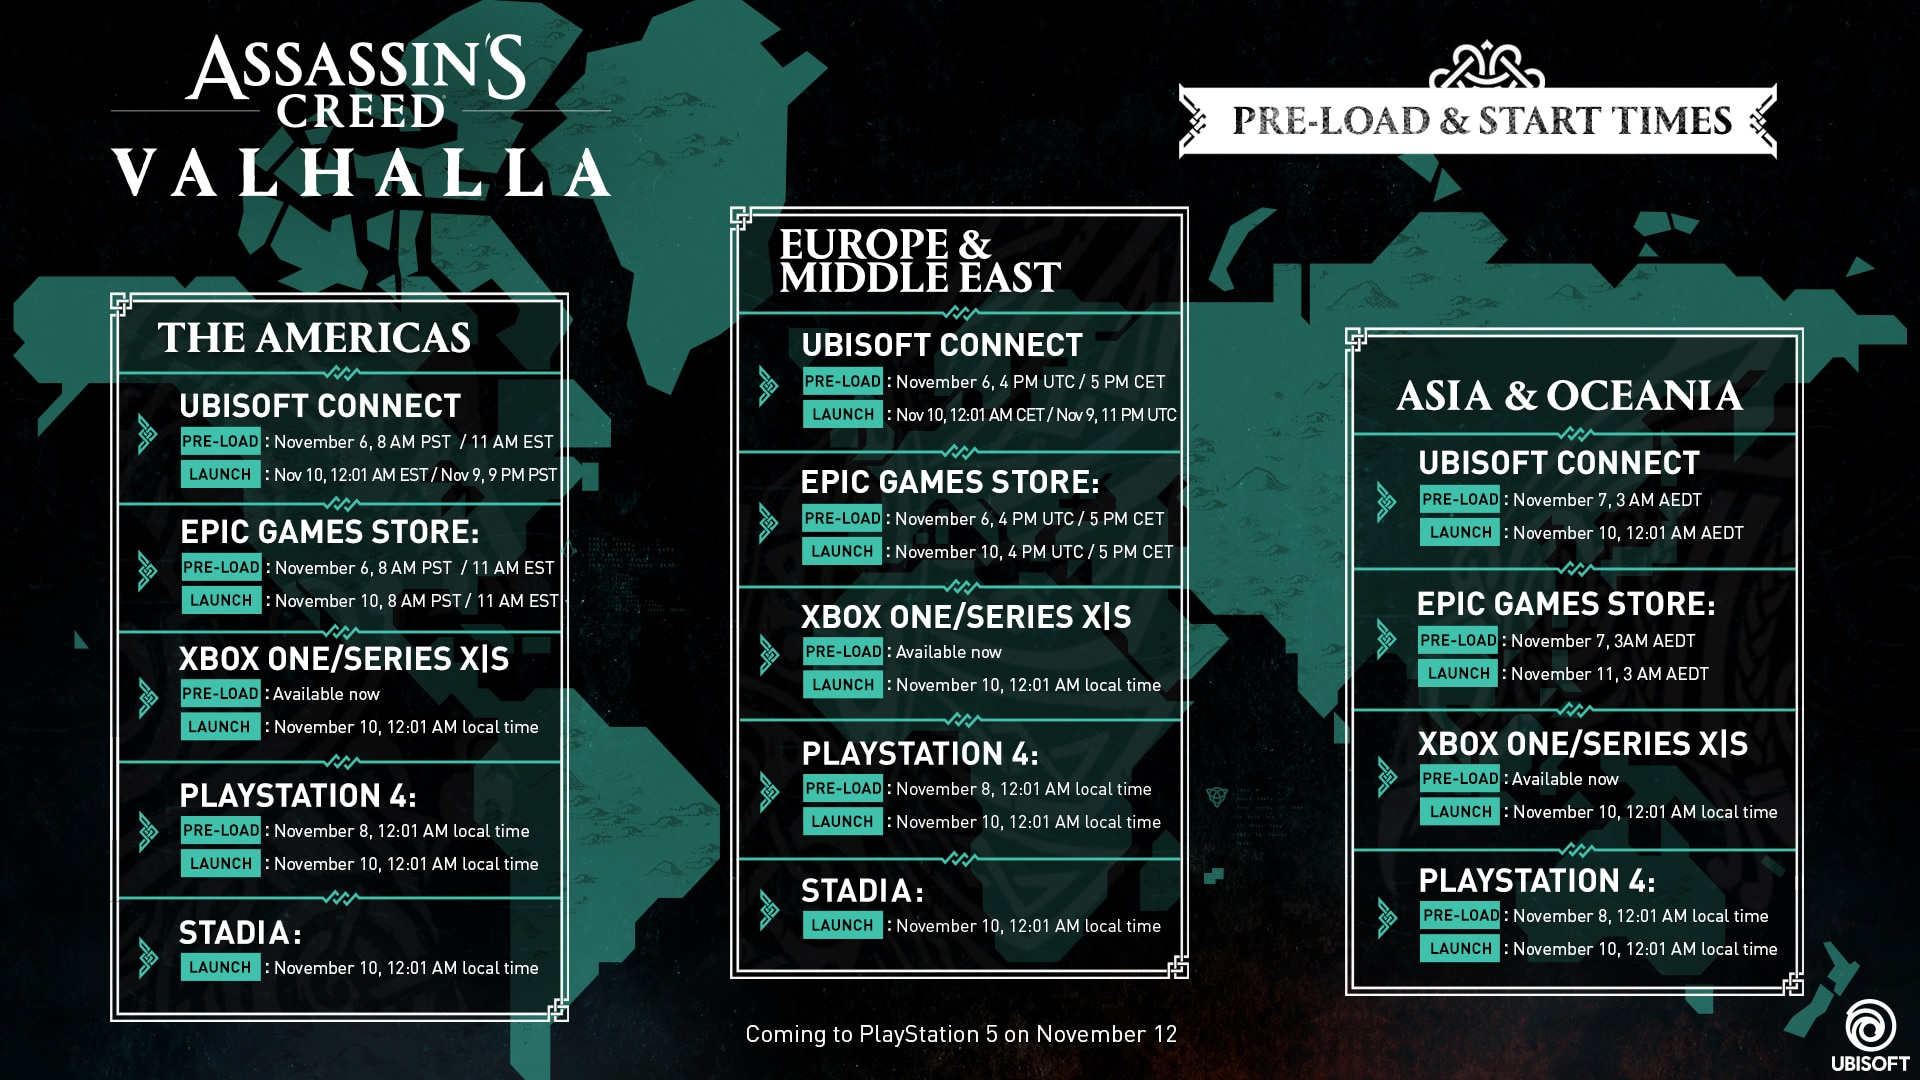 Assassin's Creed Valhalla - Launch map